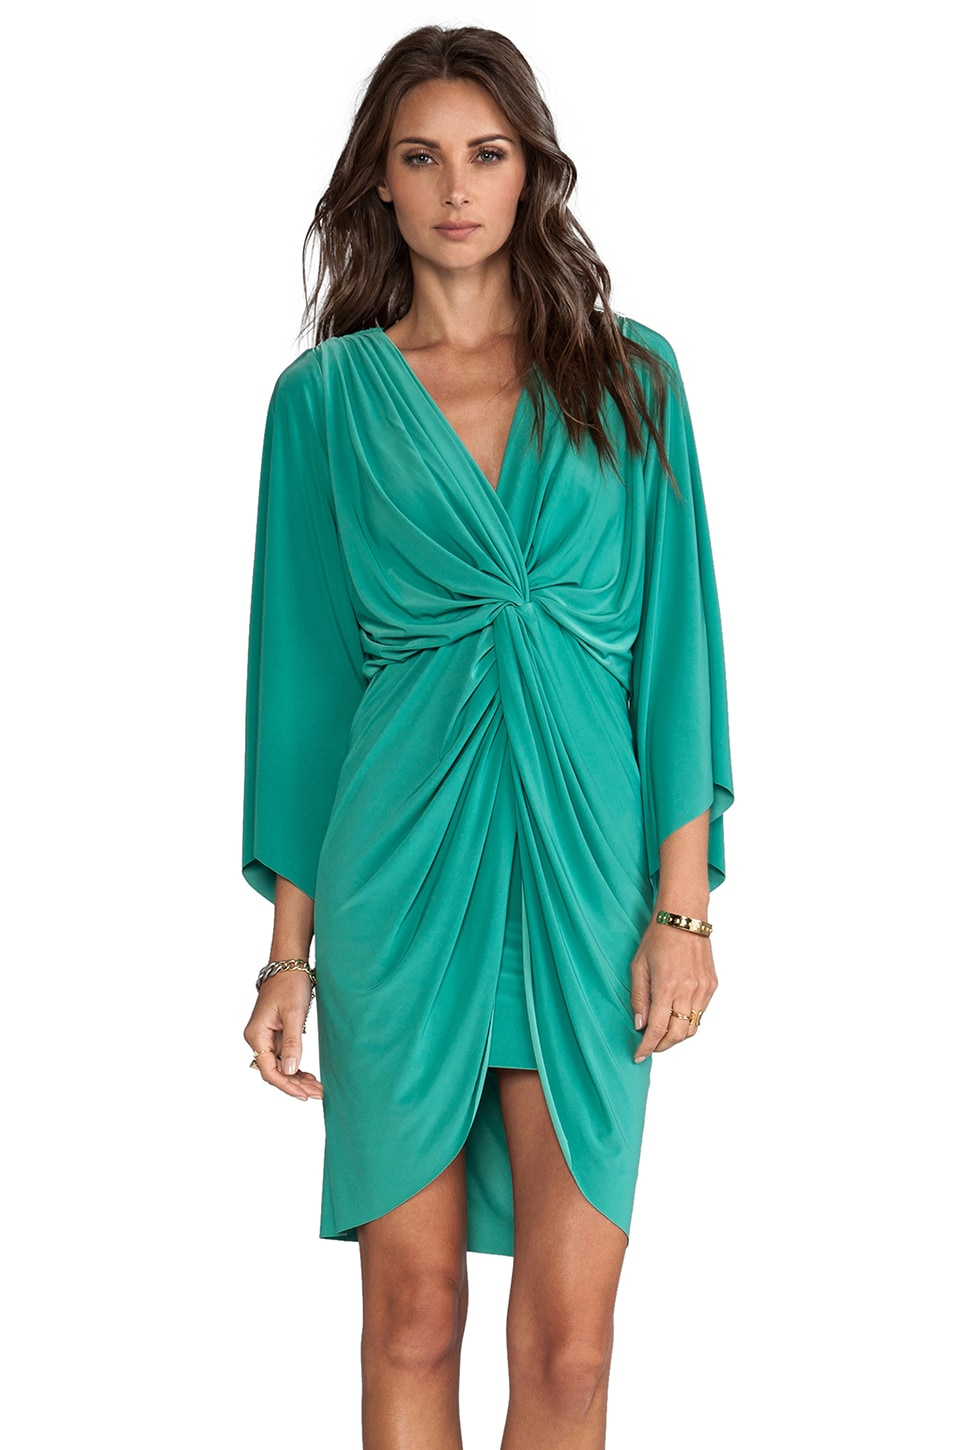 T-Bags LosAngeles Long Sleeve Knot Dress in Eucalyptus